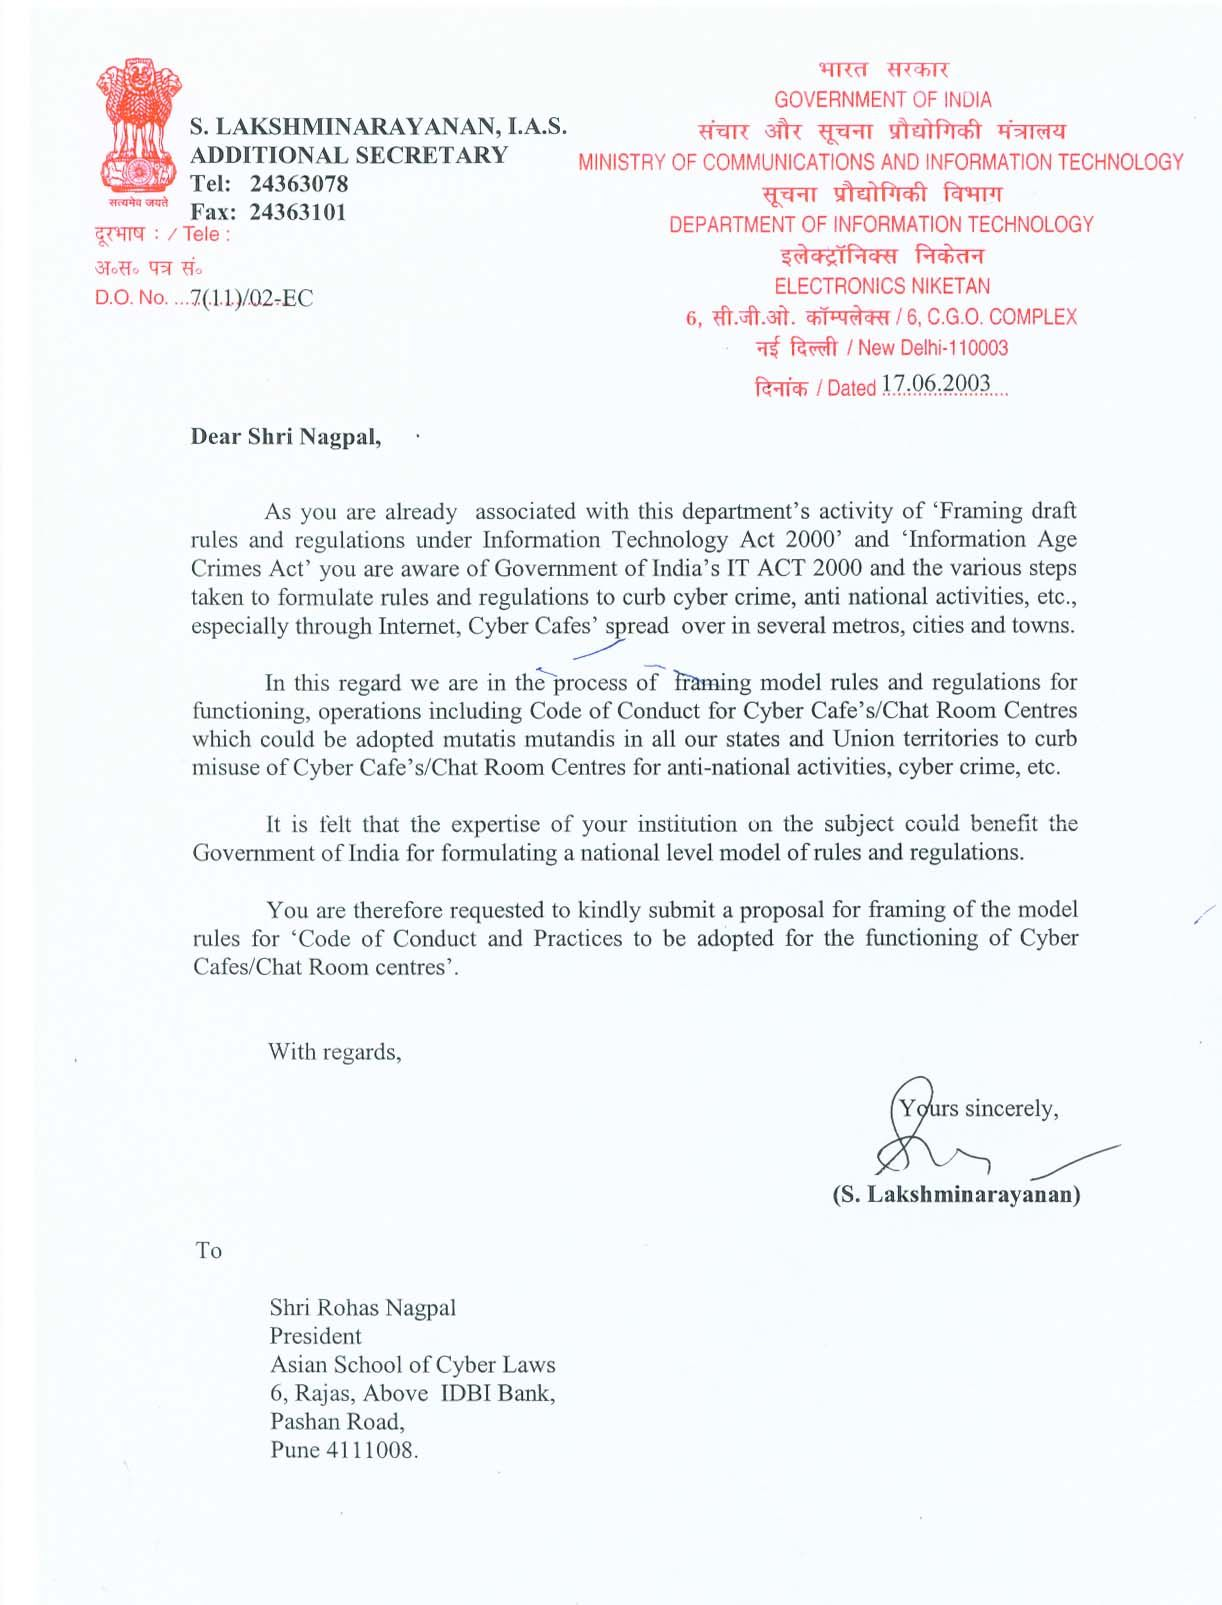 letter of thanks from the kolkata police for a workshop on cyber letter of appreciation from ministry of communications and information technology government of